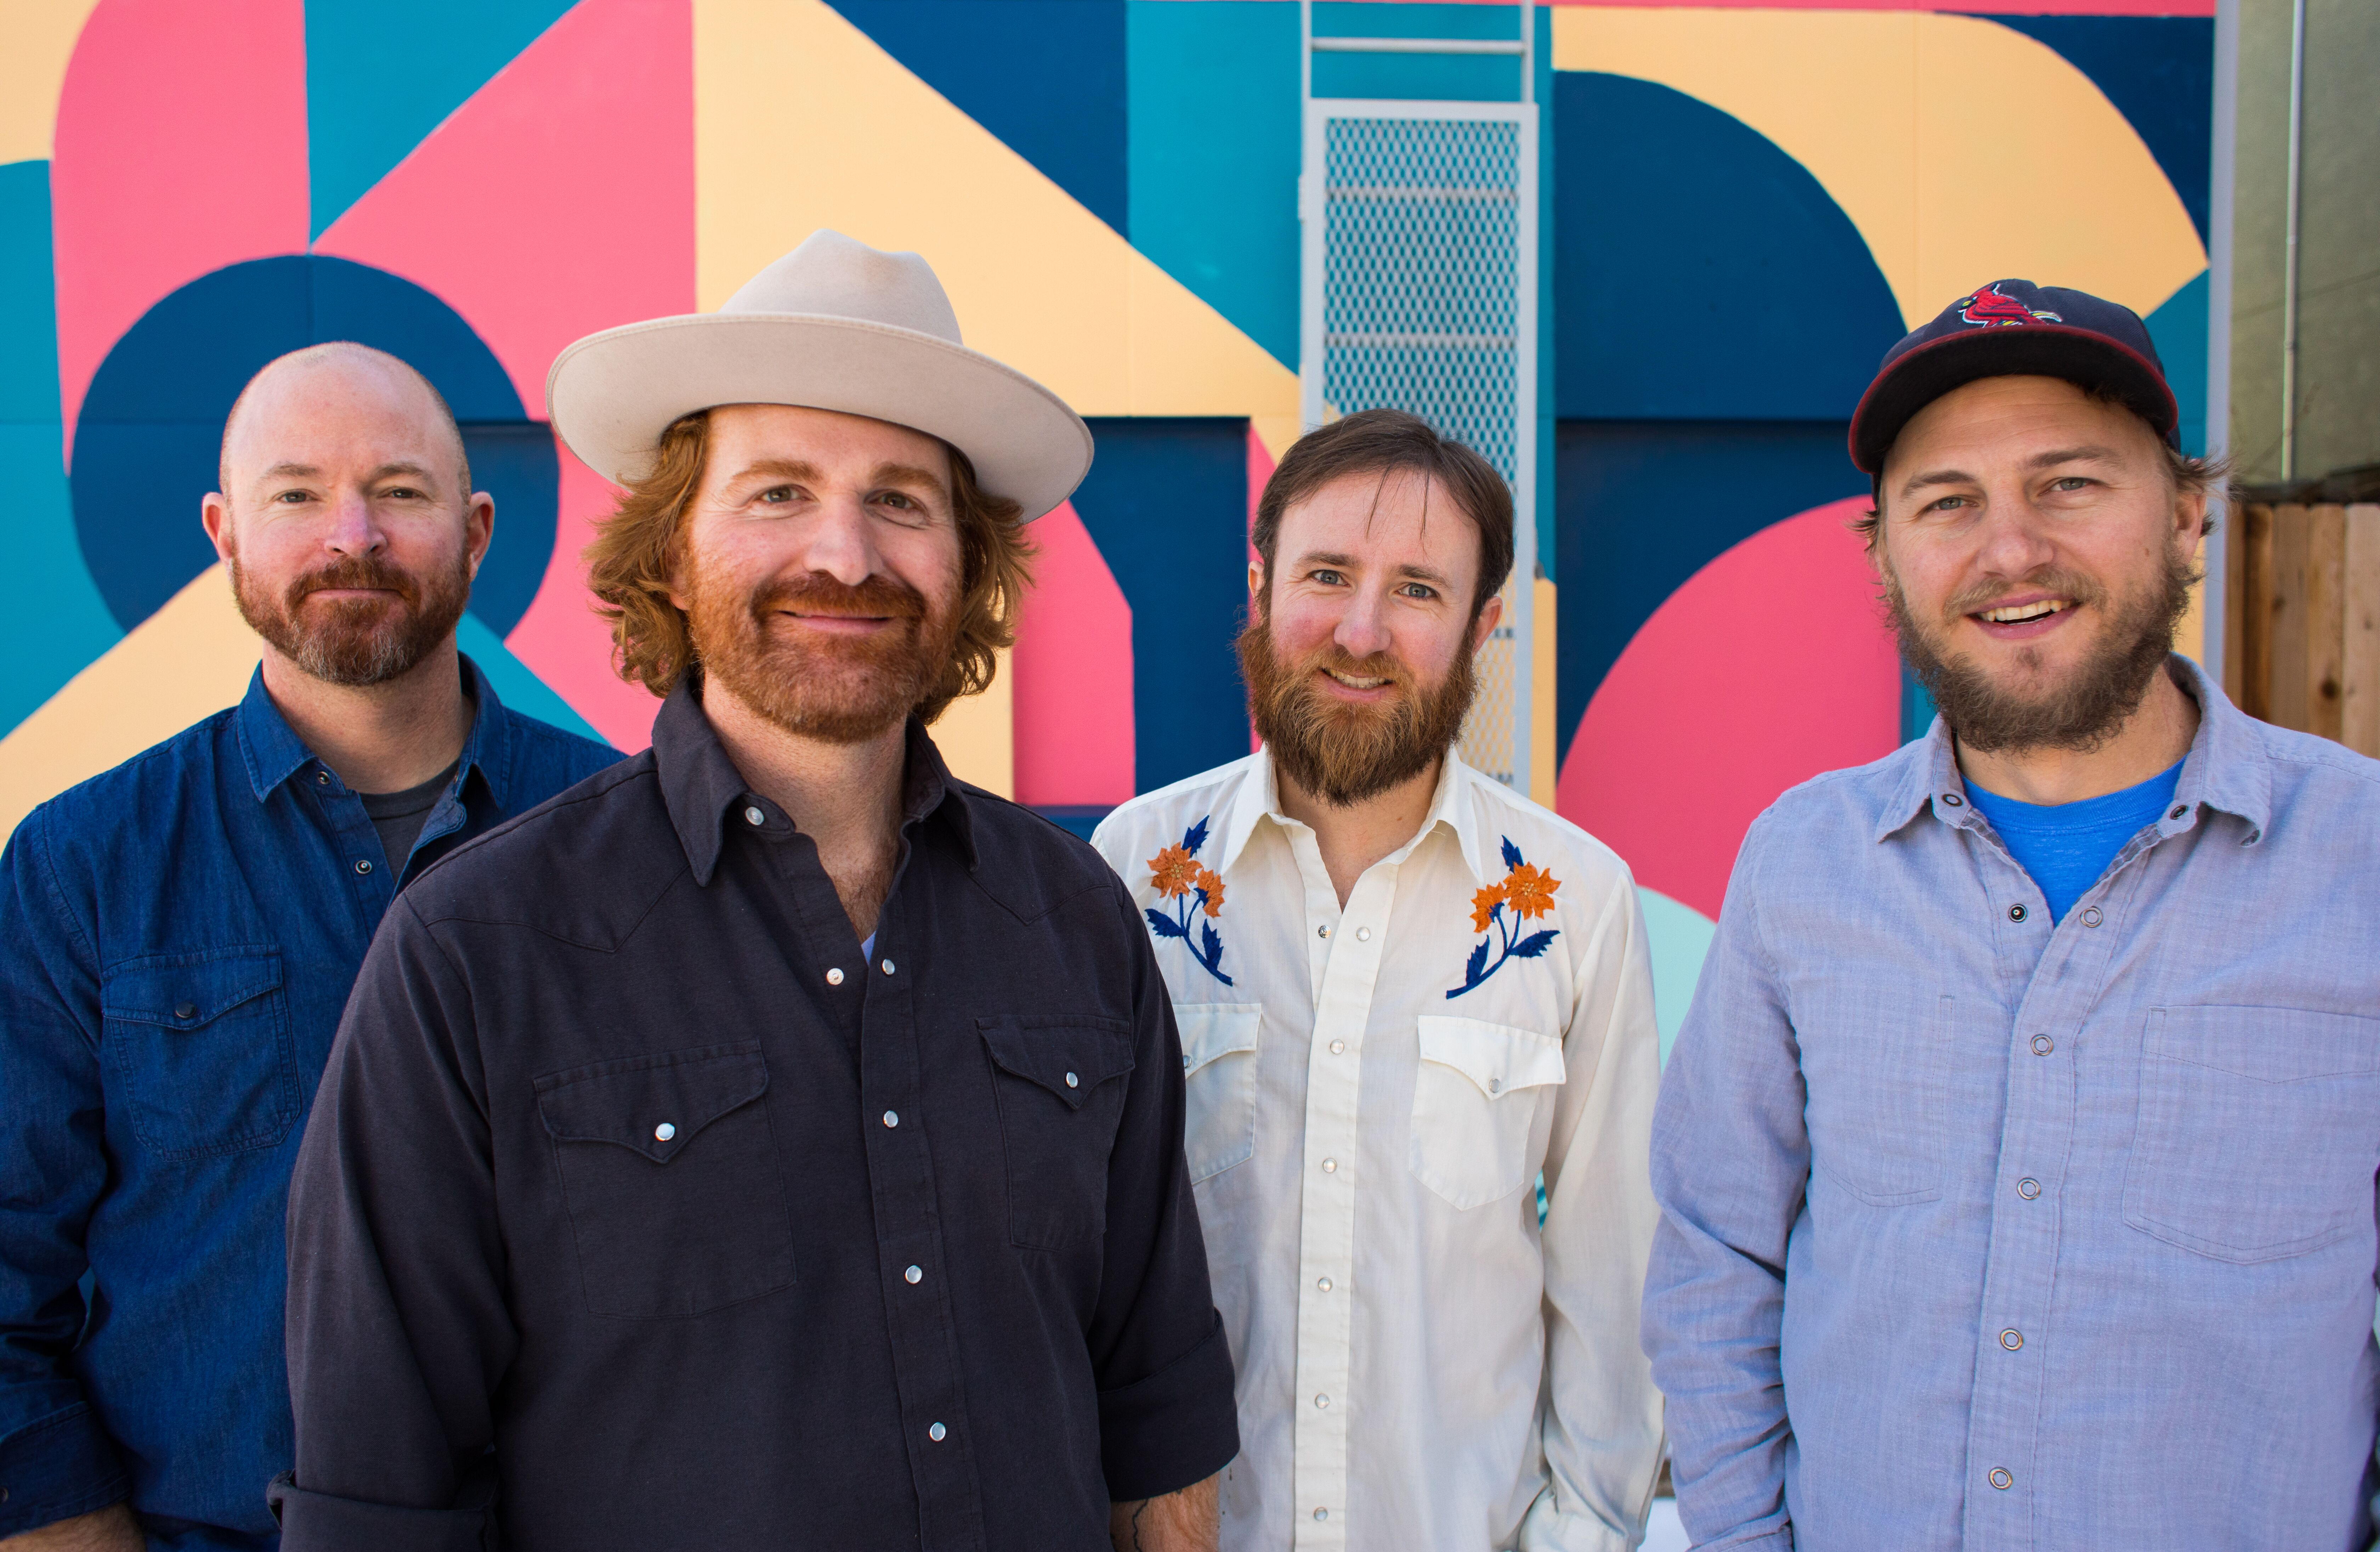 """SONG PREMIERE: Chain Station Brings Rock and Roll Energy to Bluegrass With """"Gravity"""""""